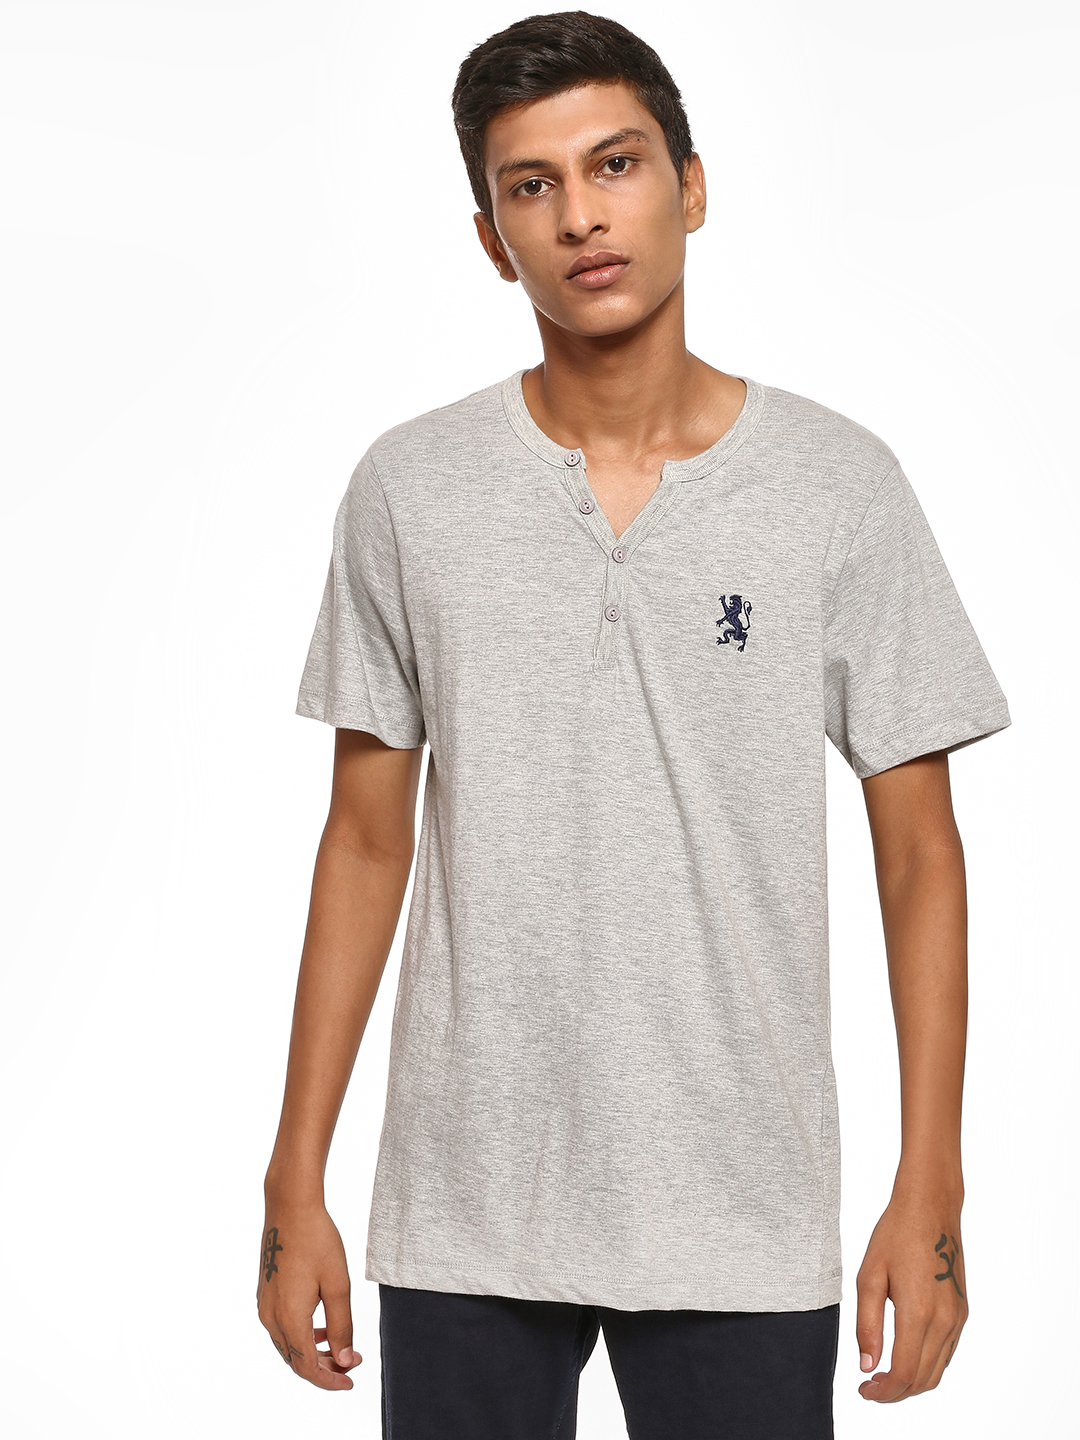 Giordano Grey Embroidered Logo Henley Neck T-Shirt 1